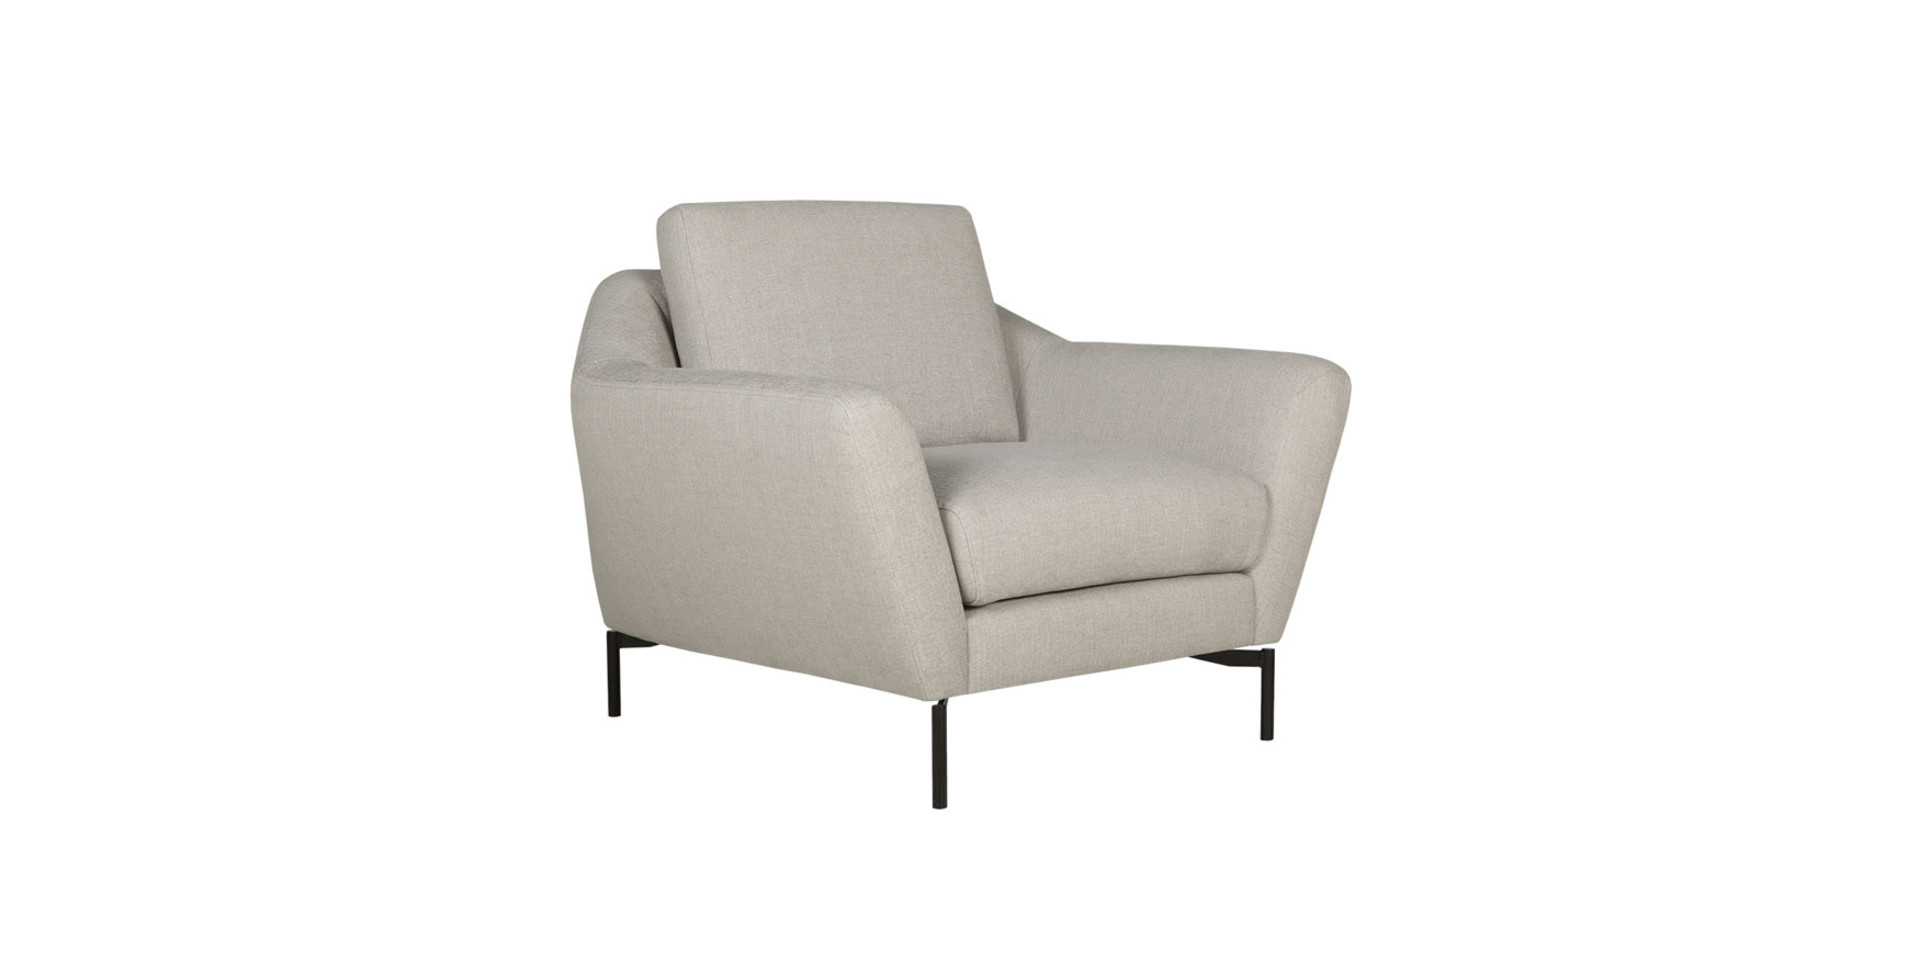 sits-agda-fauteuil-armchair_flossy6_light_grey_2